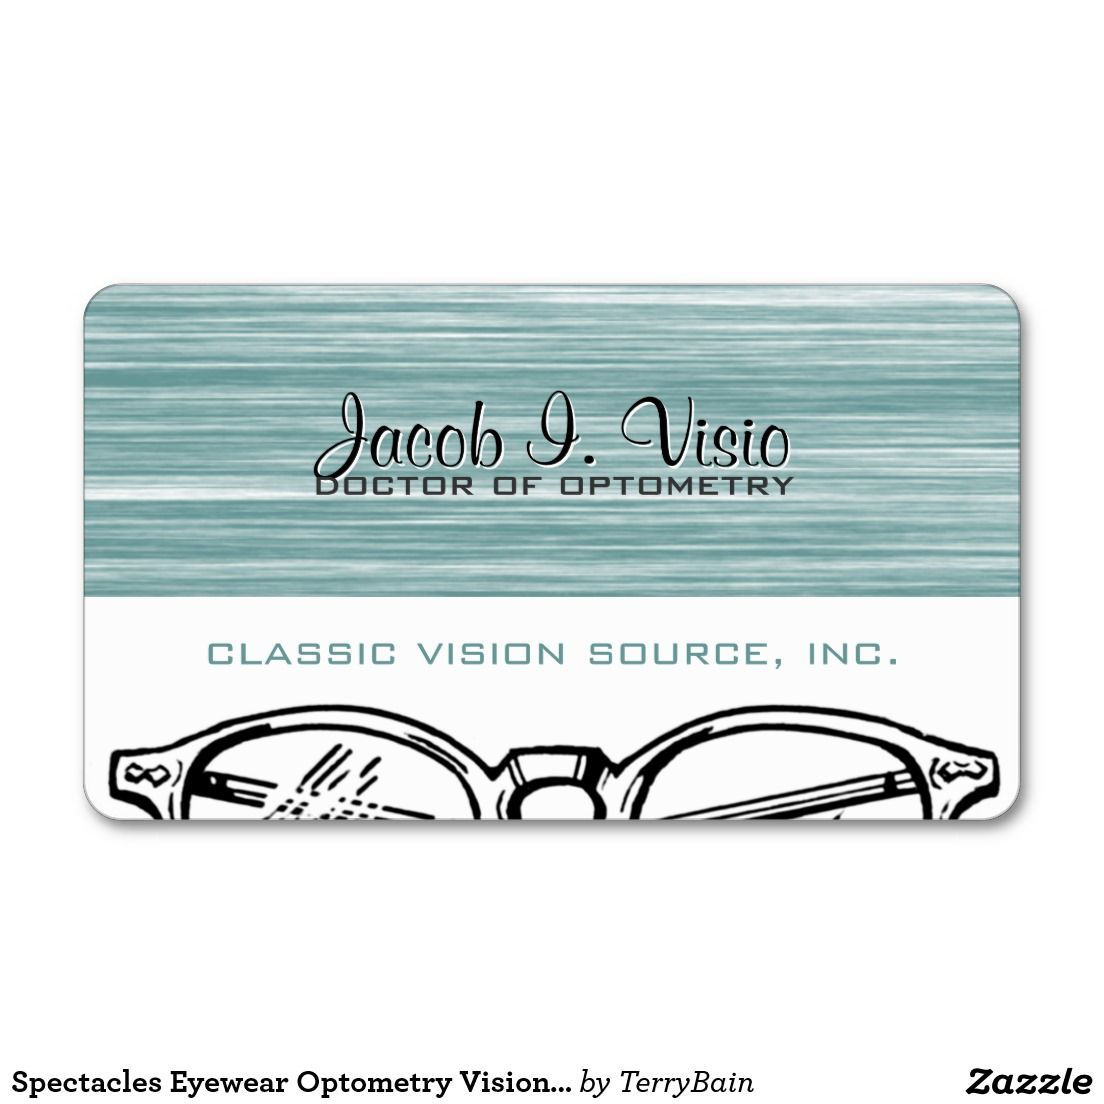 Spectacles Eyewear Optometry Vision Scratchy Business Card | Stuff ...